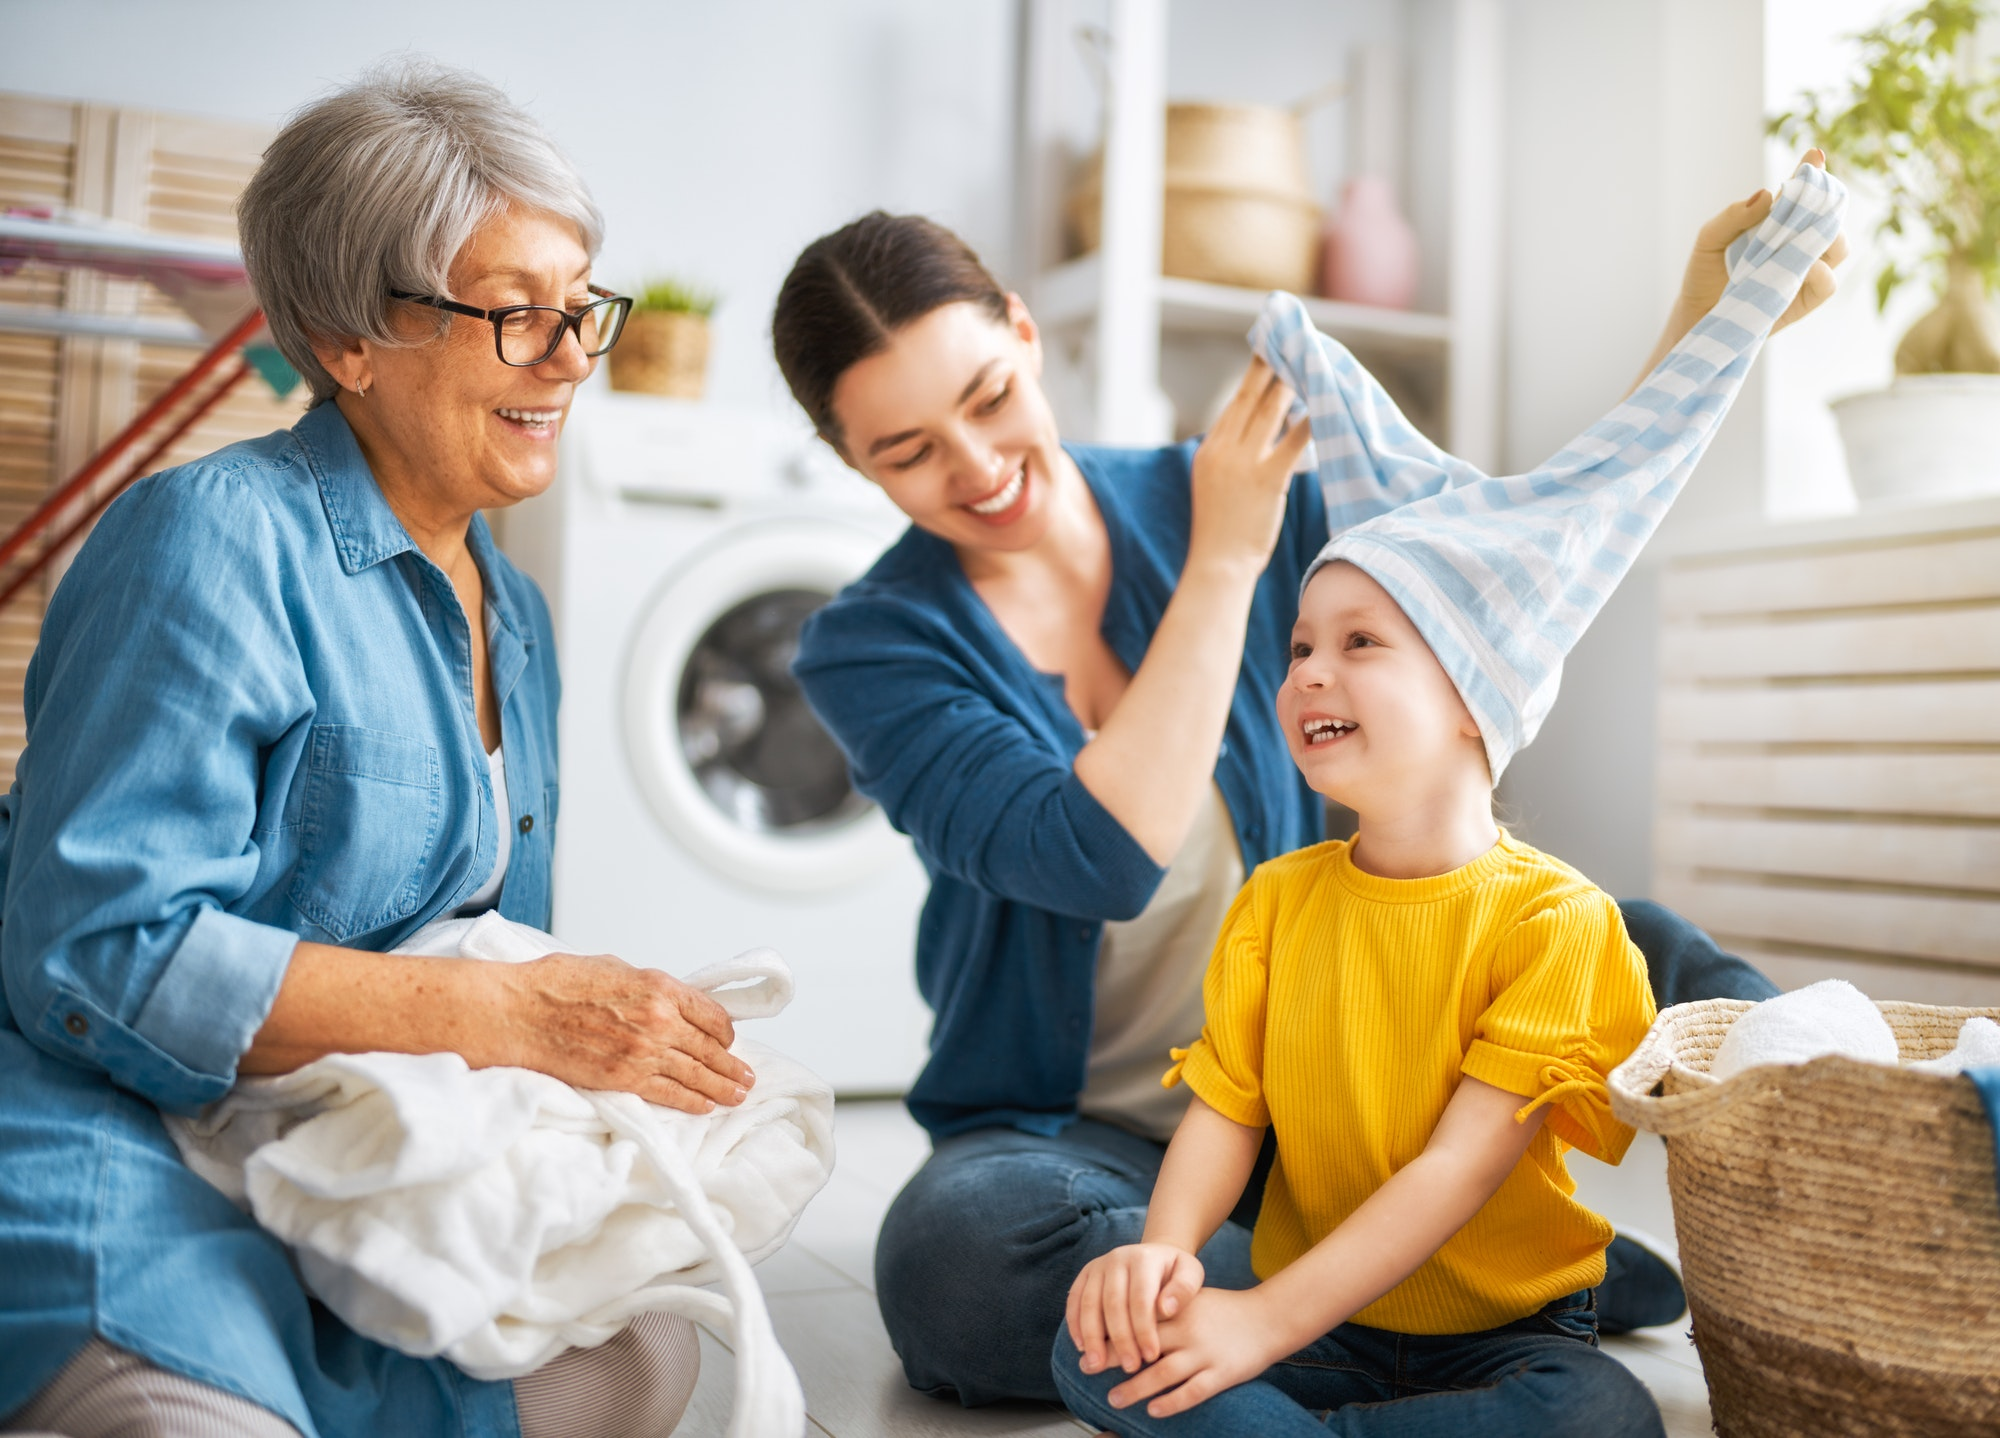 grandma, mom and child are doing laundry